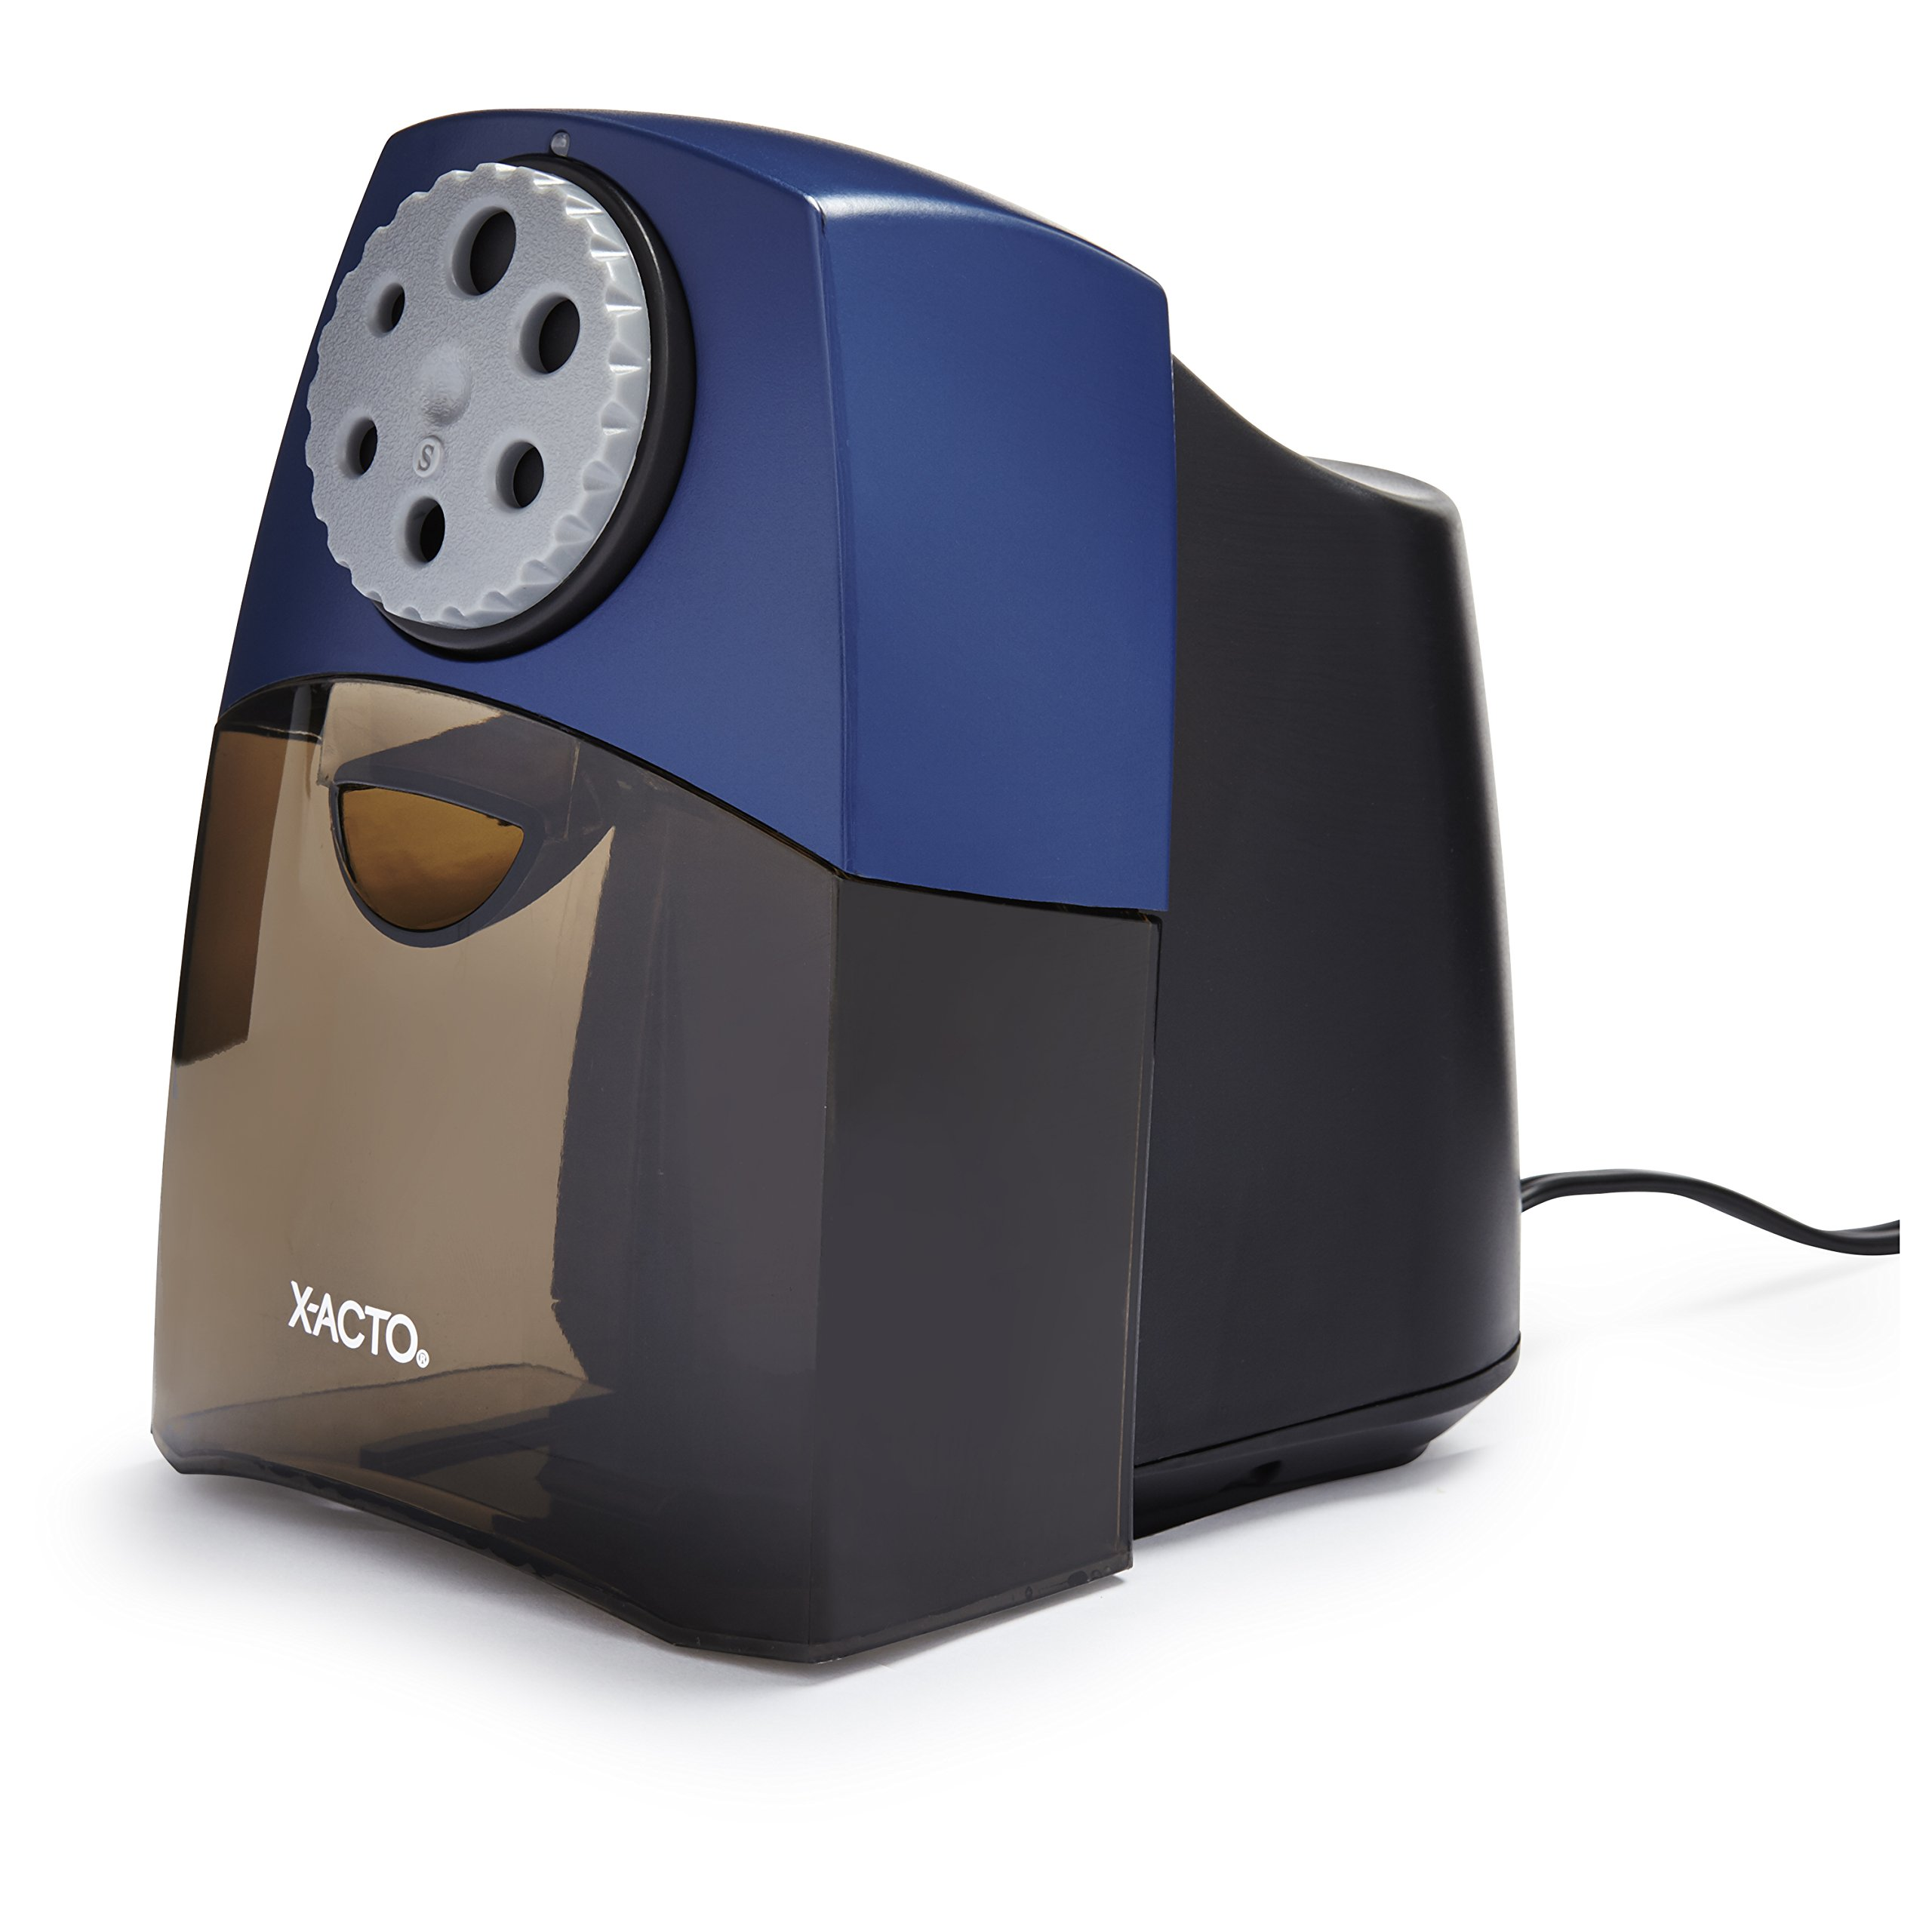 X-ACTO Electric Pencil Sharpener | SchoolPro Pencil Sharpener for Classrooms, Quiet Electric Motor, Adjustable to Six Pencil Sizes by X-Acto